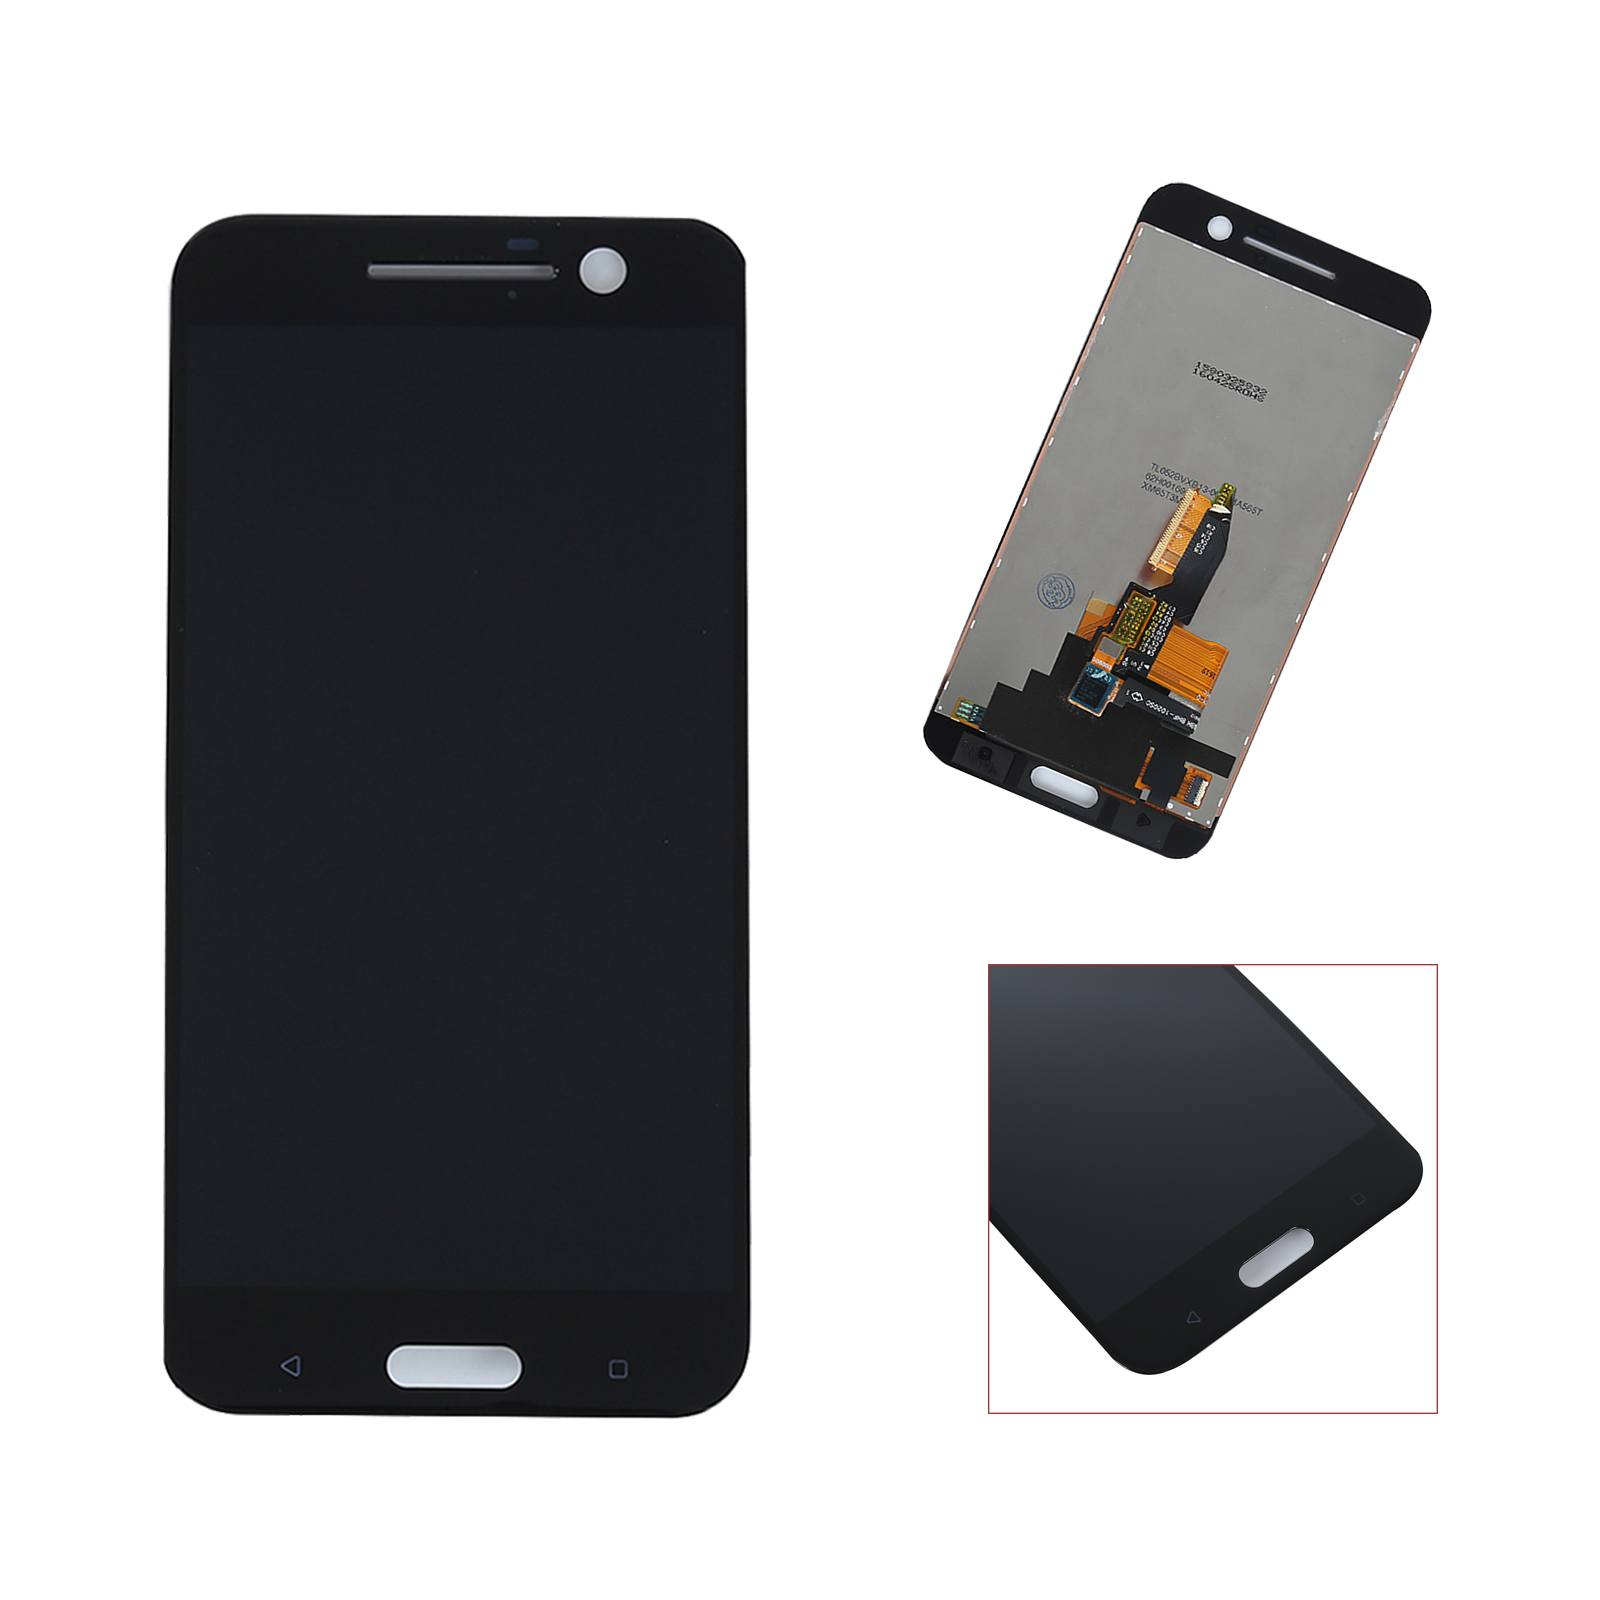 Acer Iconia A500 Touch Screen Digitizer Circuit Board Free Shipping